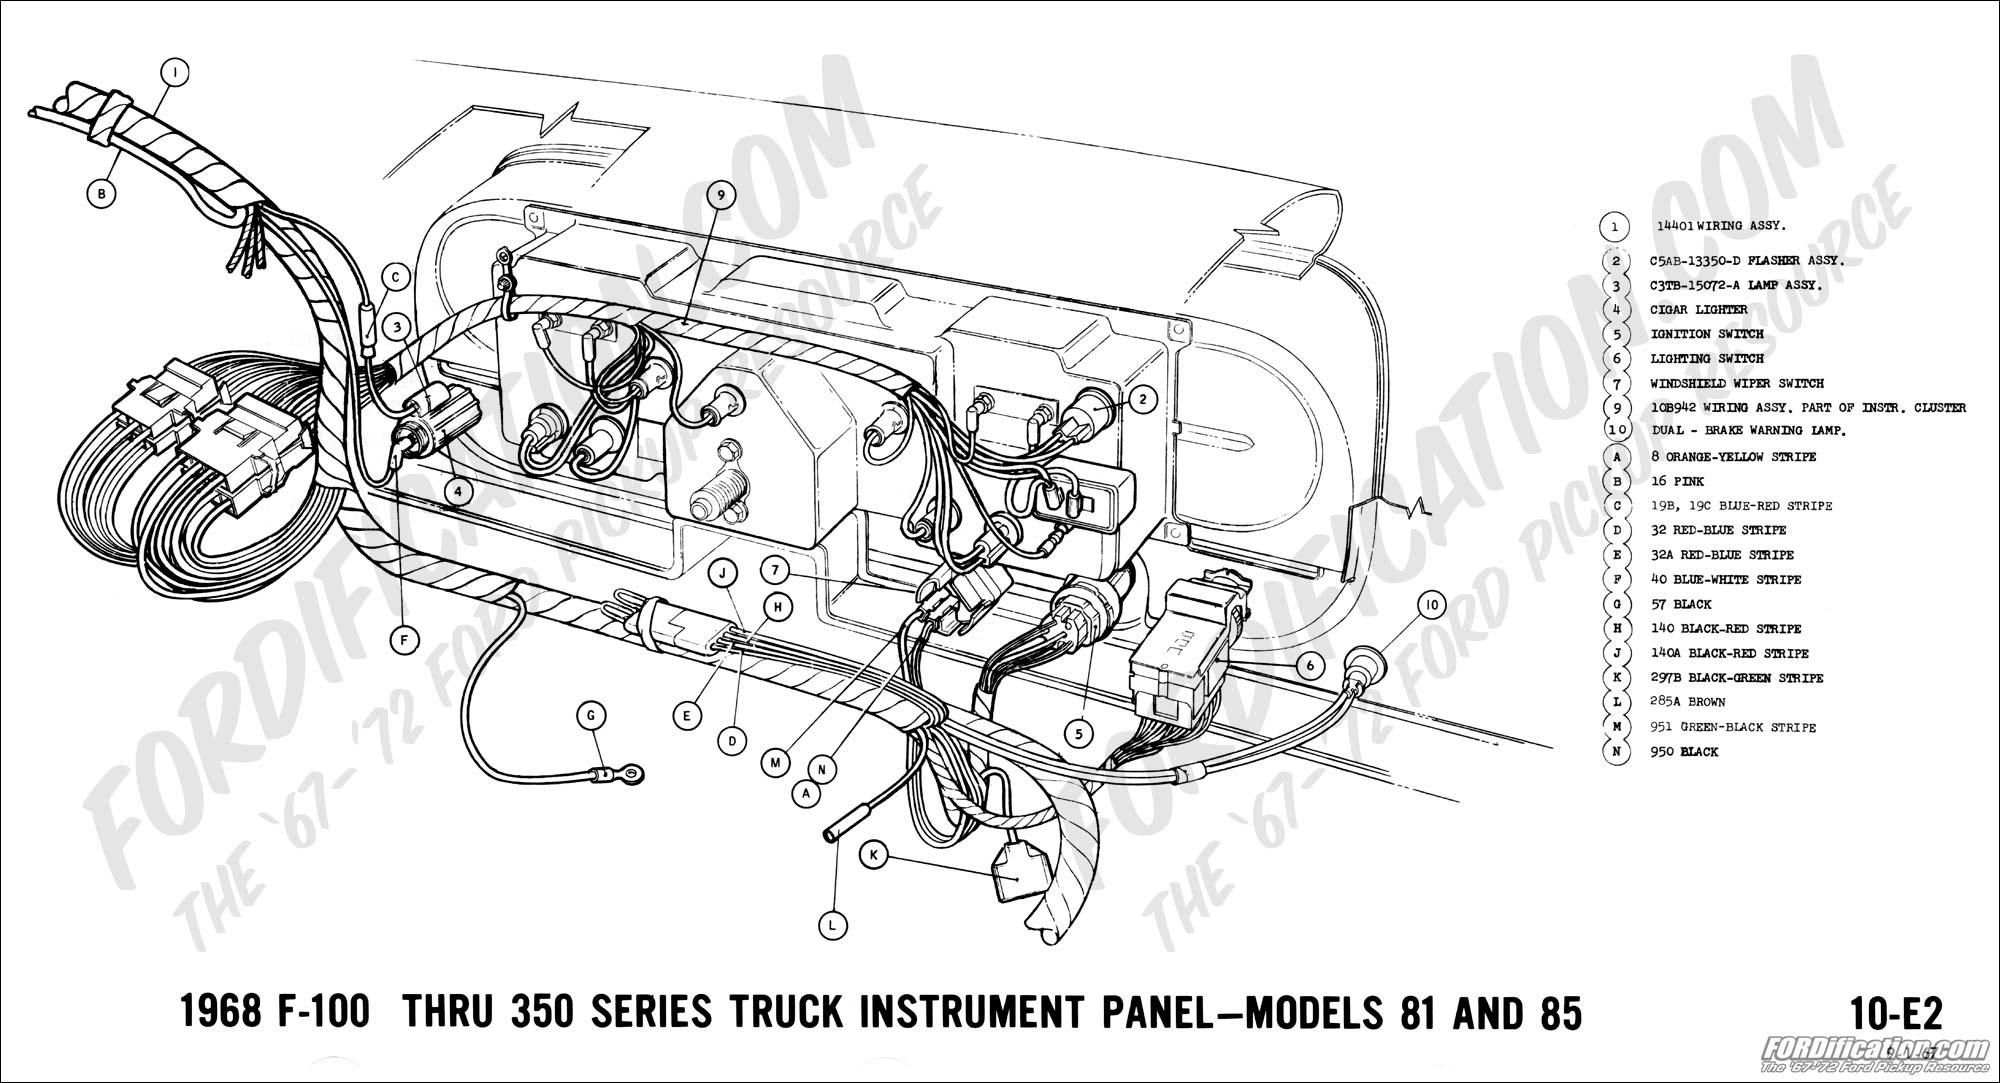 Ford Truck Technical Drawings And Schematics Section H Wiring Fuel System Diagram Moreover Electric Garage Heater Manual Diagrams Legend 1968 F 100 Thru 350 Instrument Panel